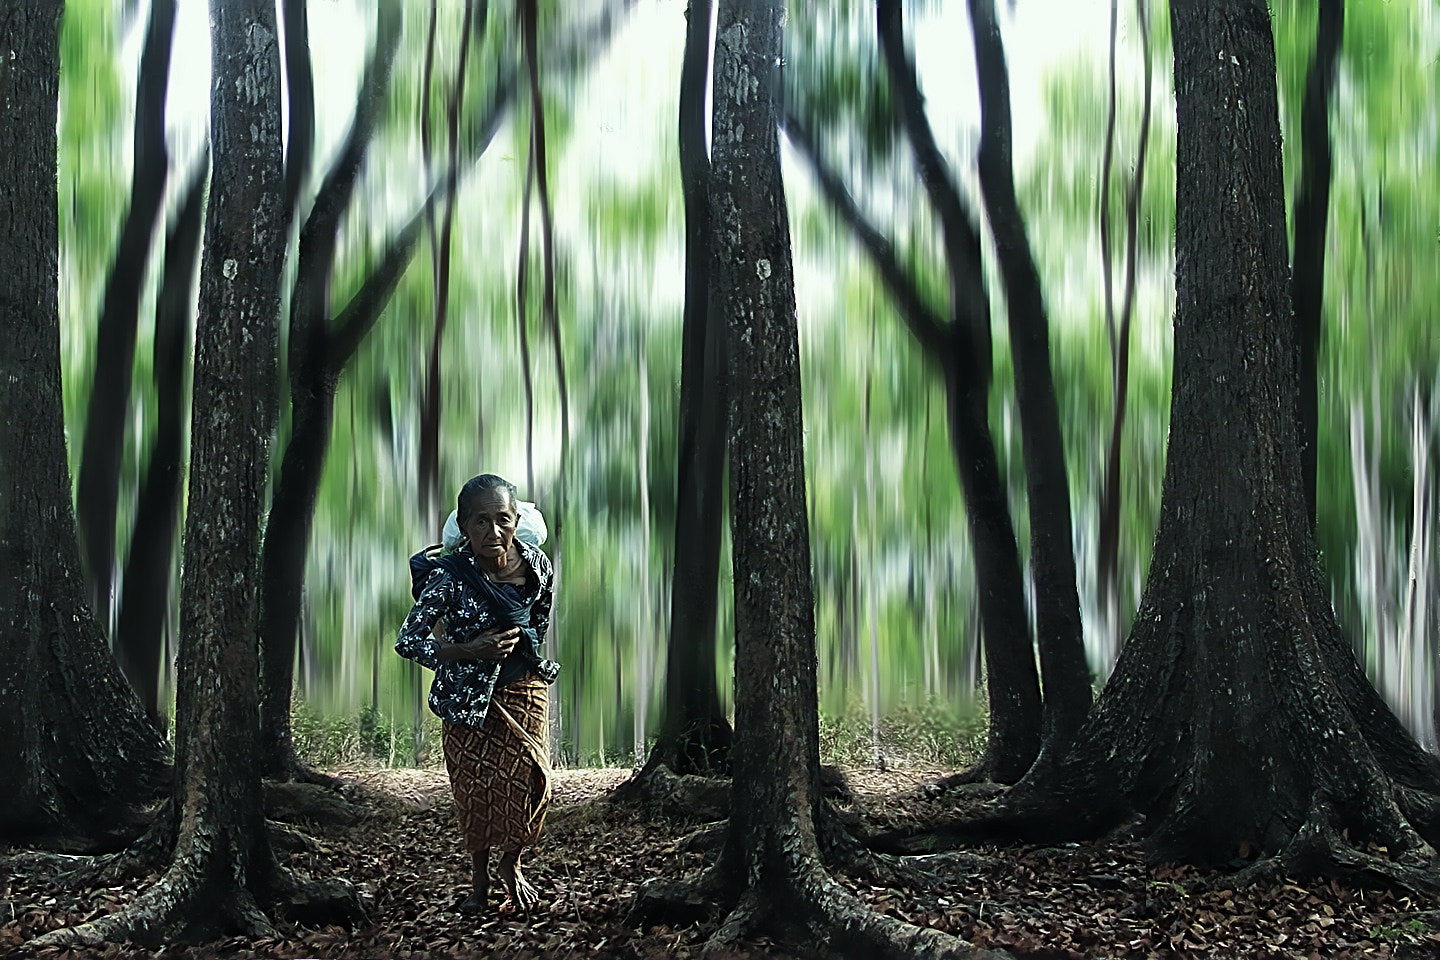 Photograph is My Life by 3 Joko on 500px